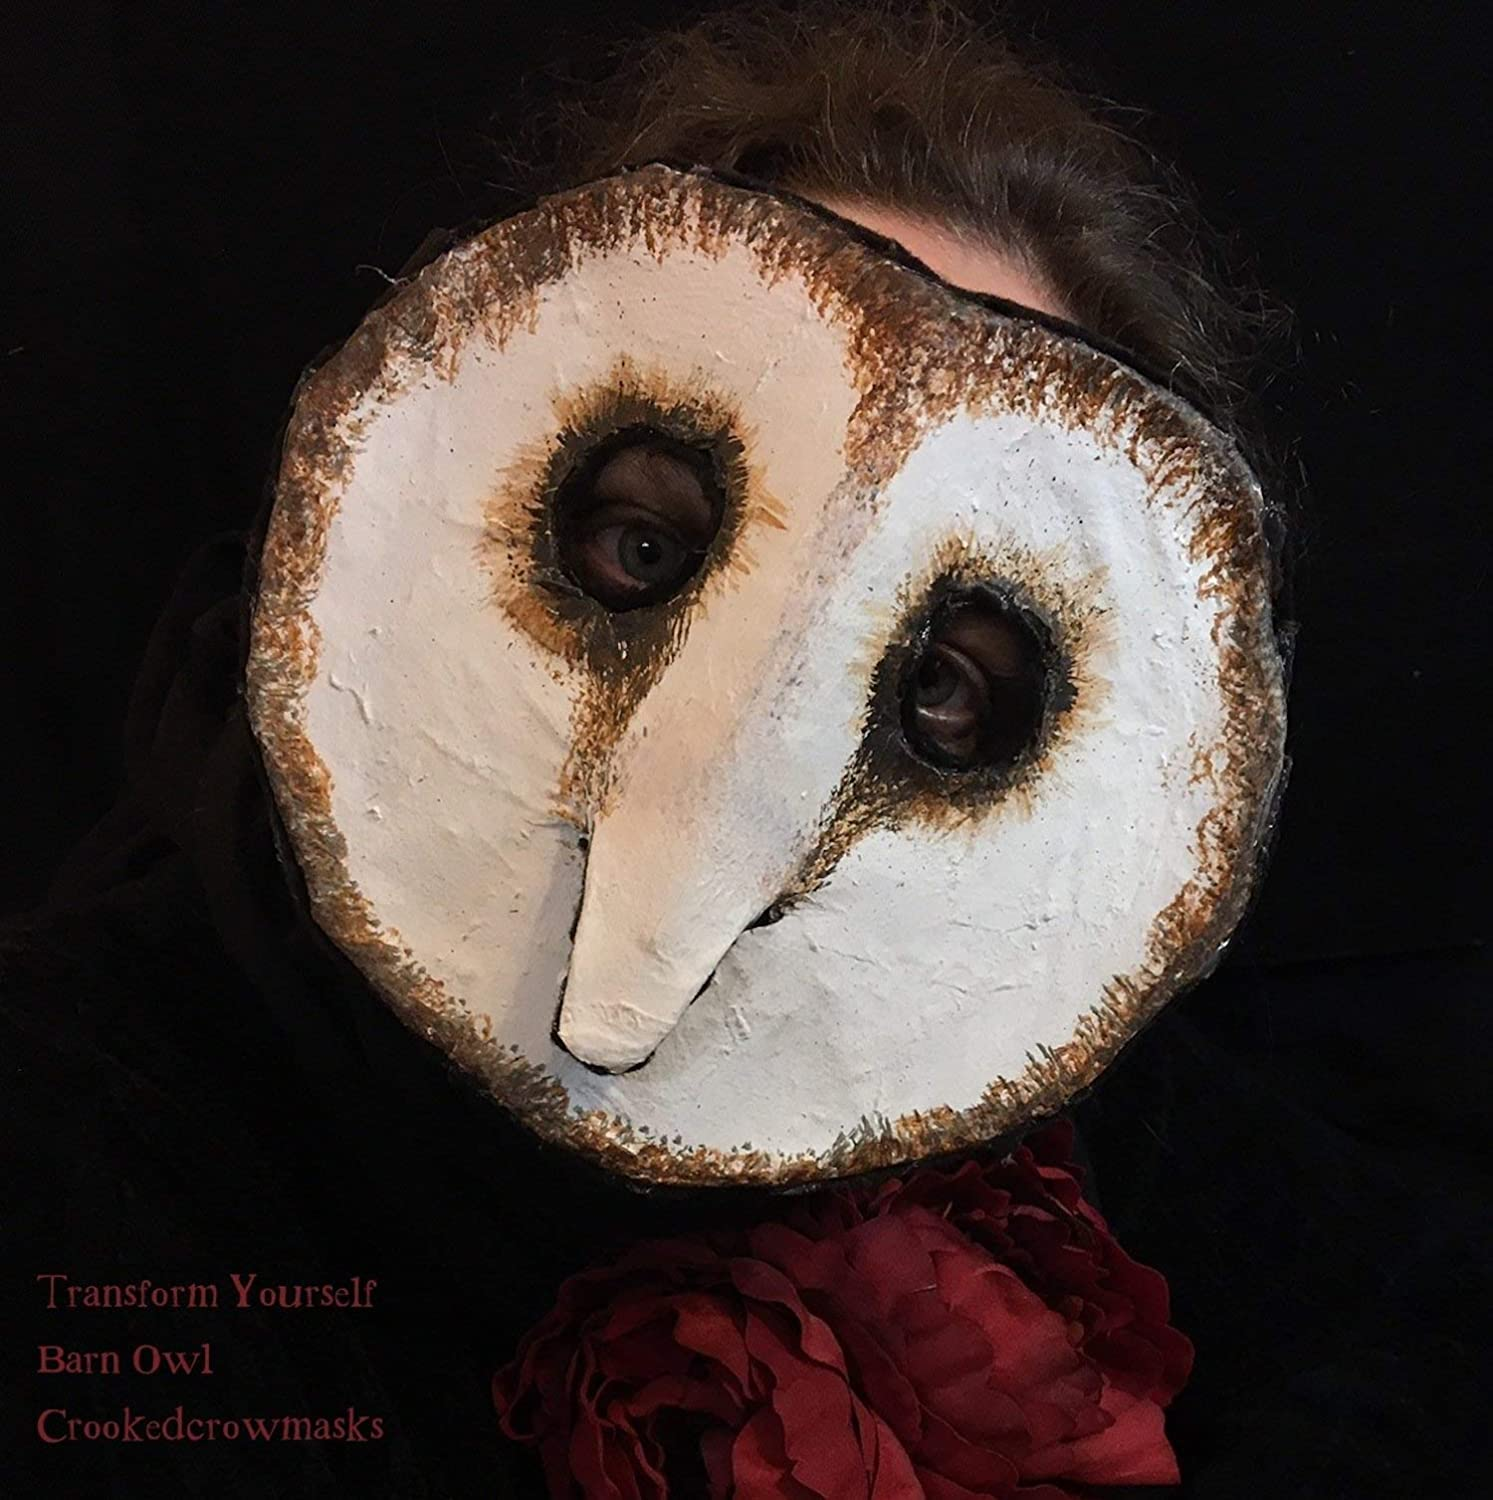 Barn Owl Mask, snowy owl mask, paper owl mask, paper mache owl mask, costume masquerade mask, white owl mask creepy mask, photo shoot mask.